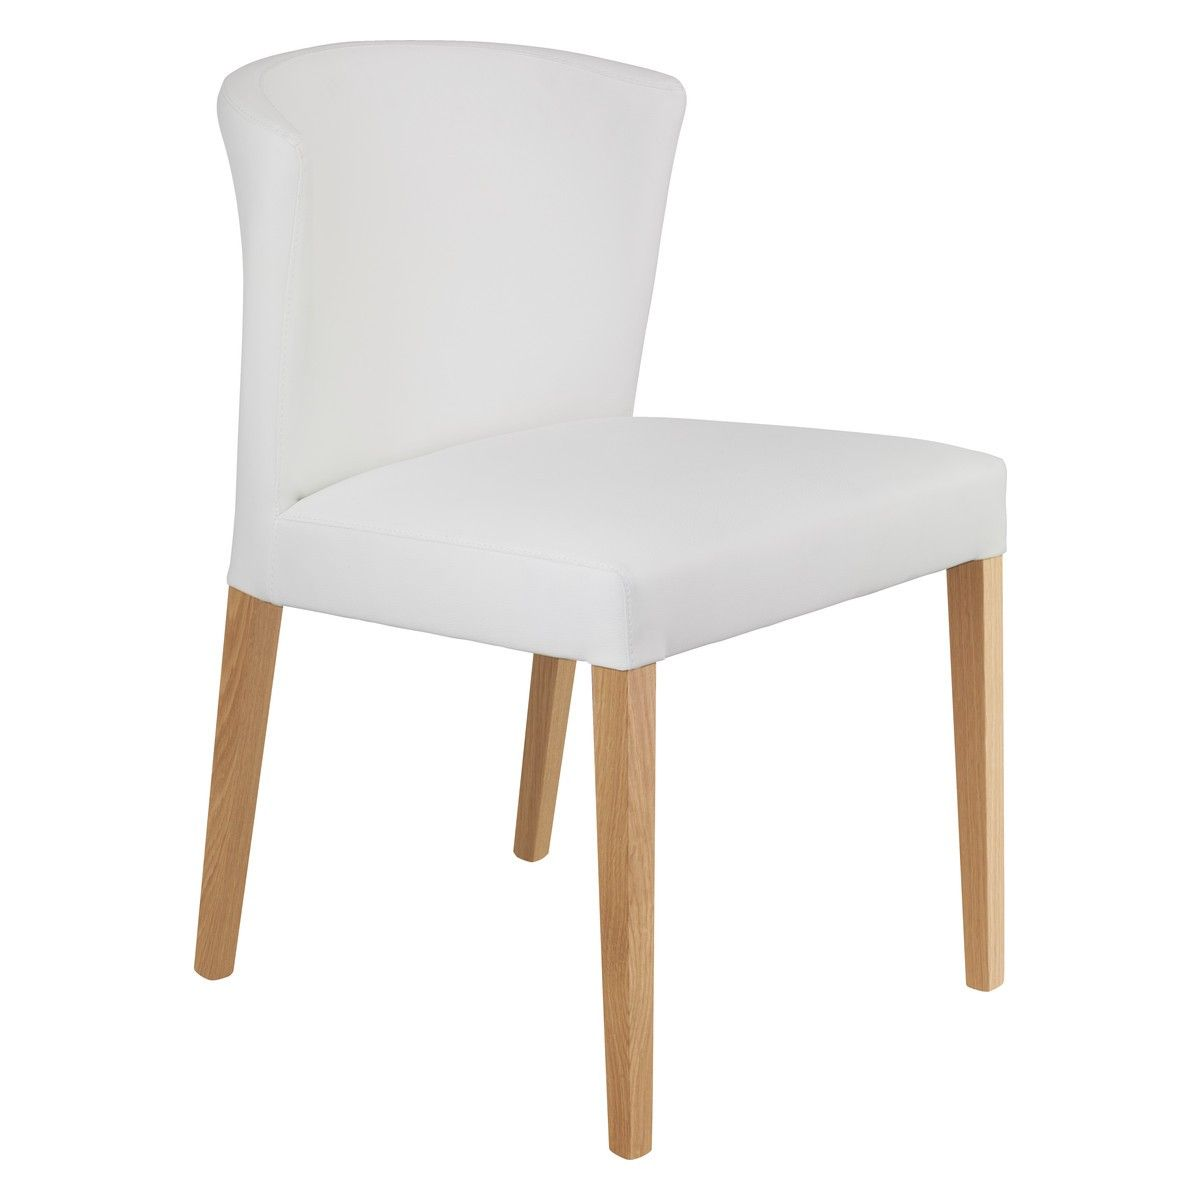 White Leather Chairs Dining Ergonomic Chair Tailbone Valentina Faux